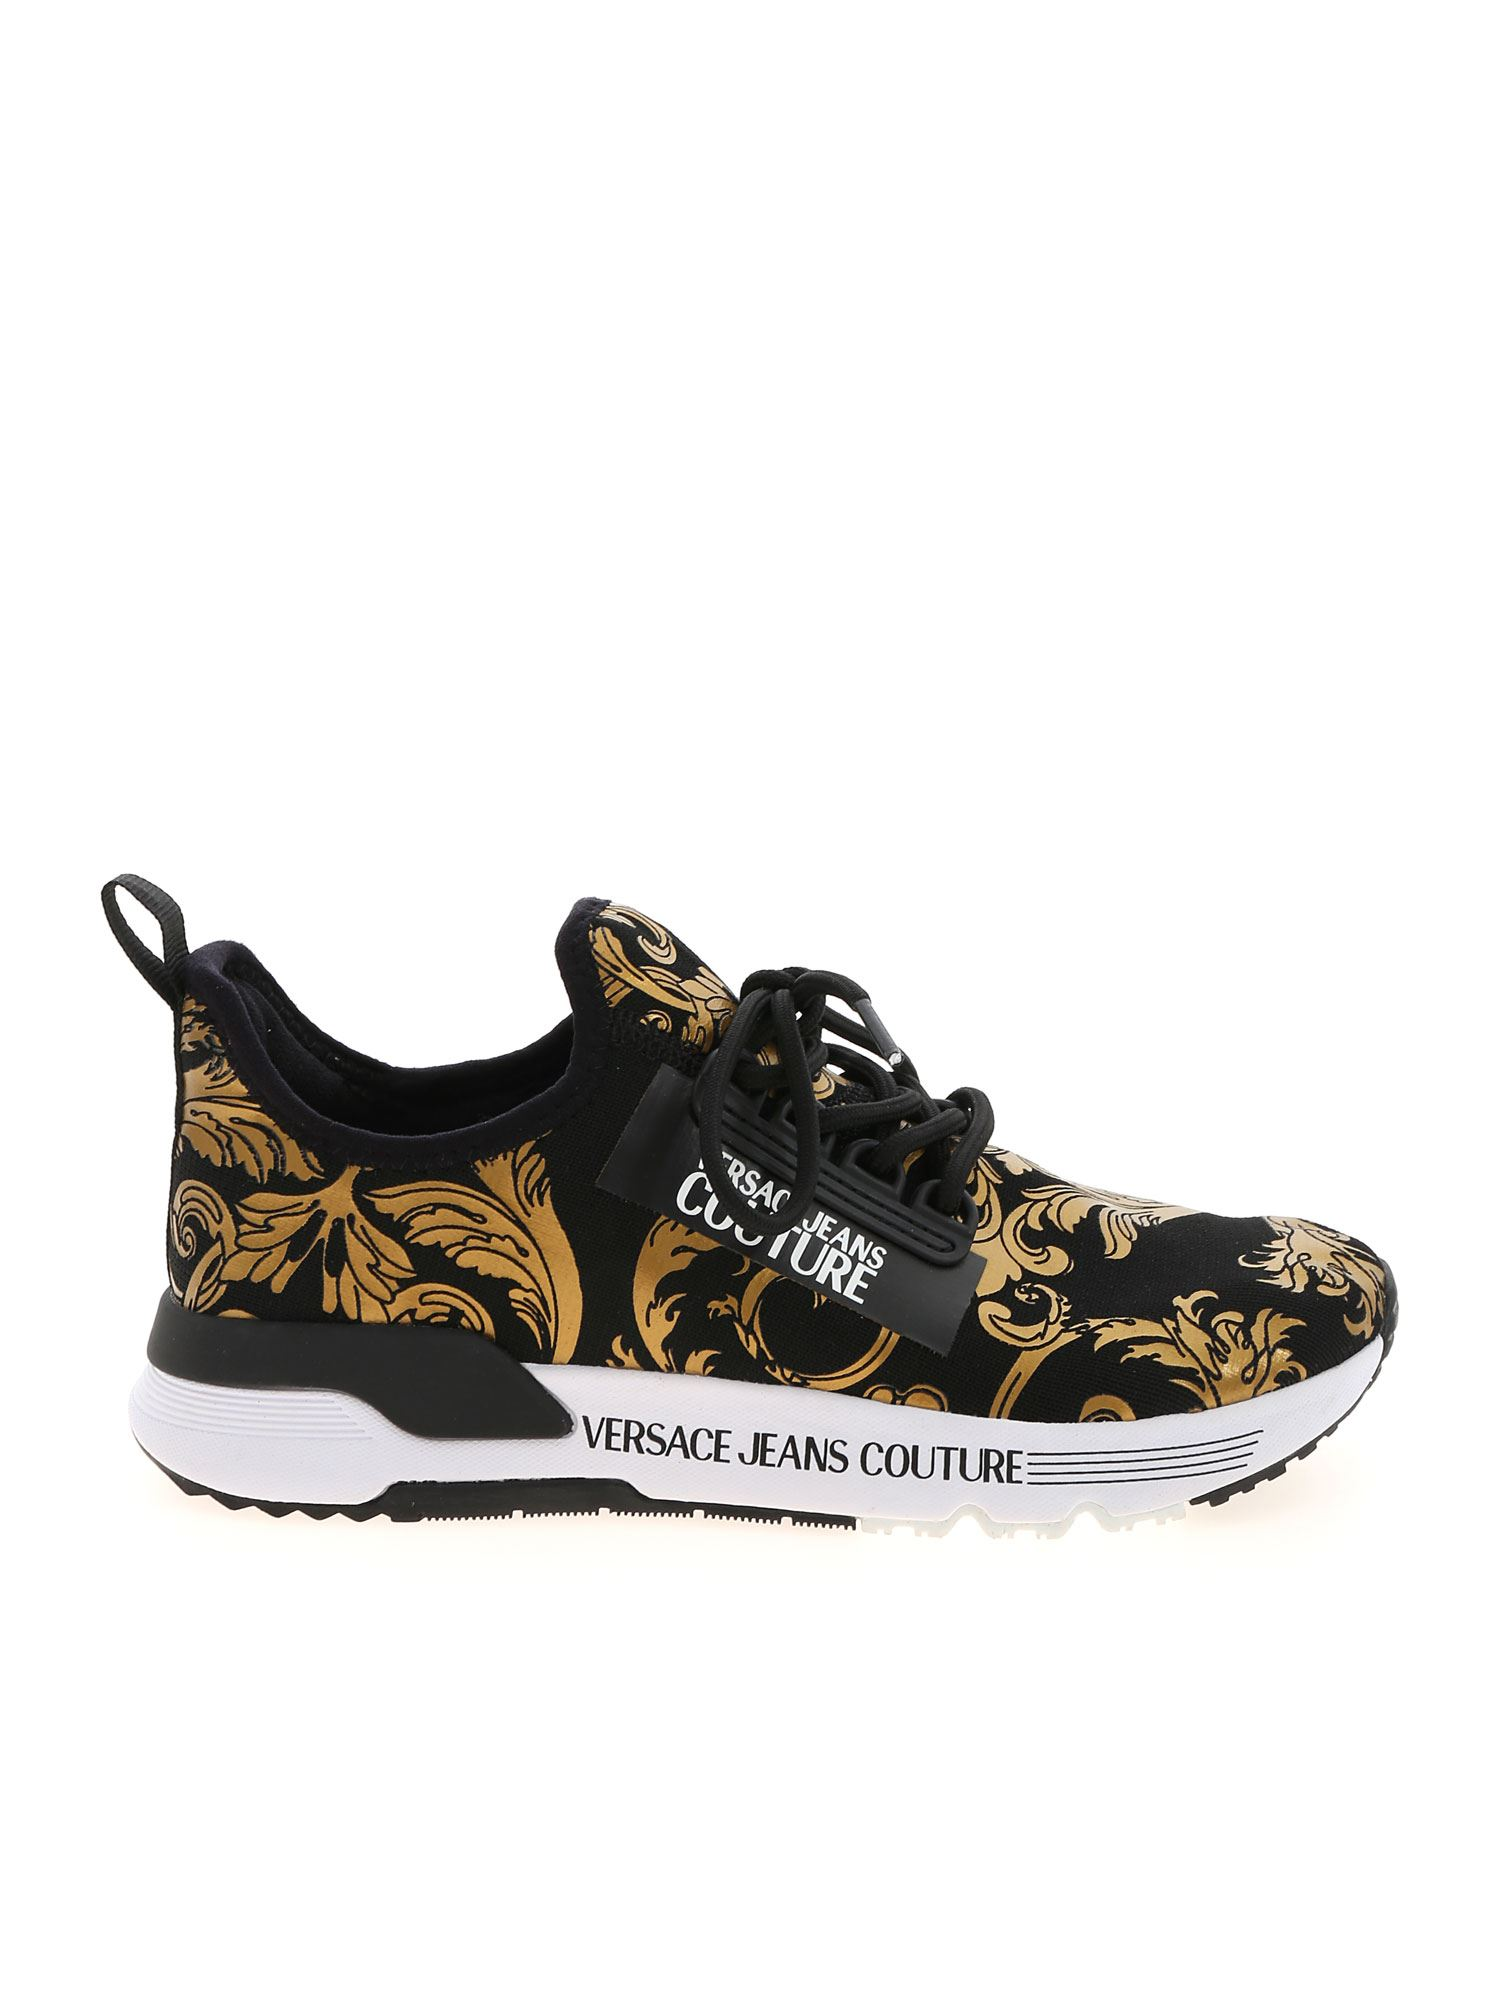 Versace Jeans Couture BAROQUE LOGO SNEAKERS IN BLACK